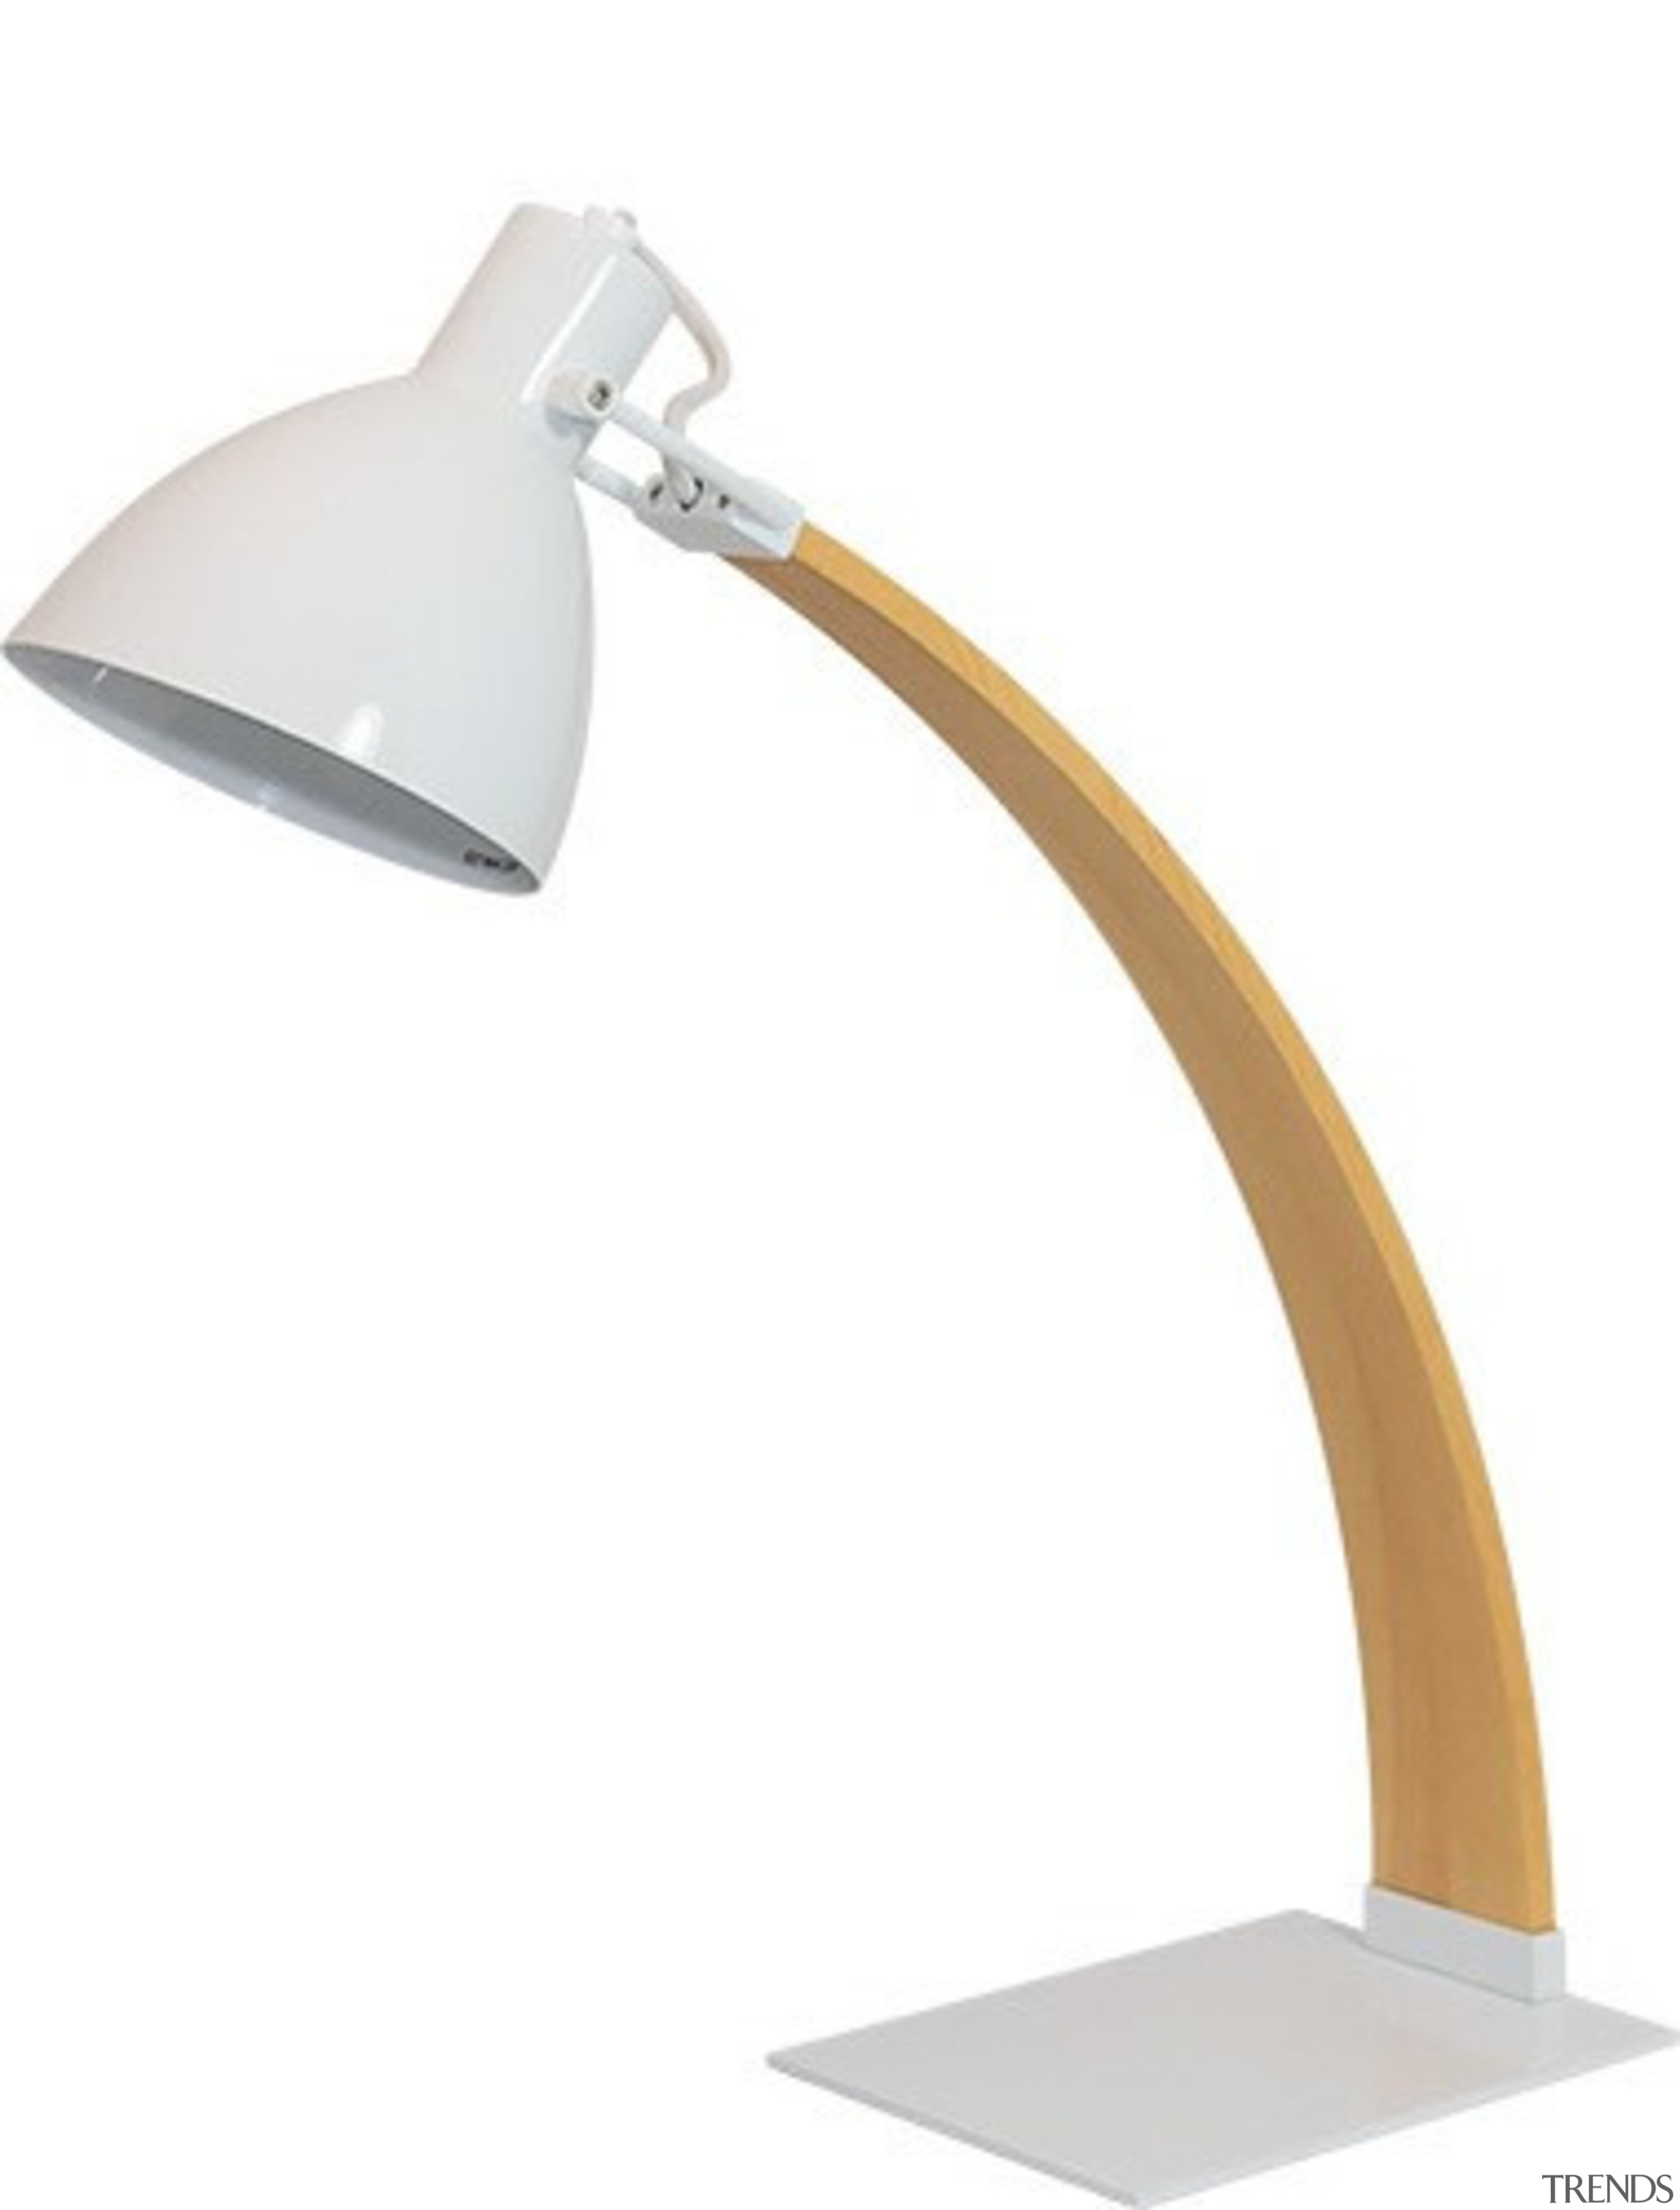 FeaturesThe mix of wood and painted metal in light fixture, lighting, product design, white